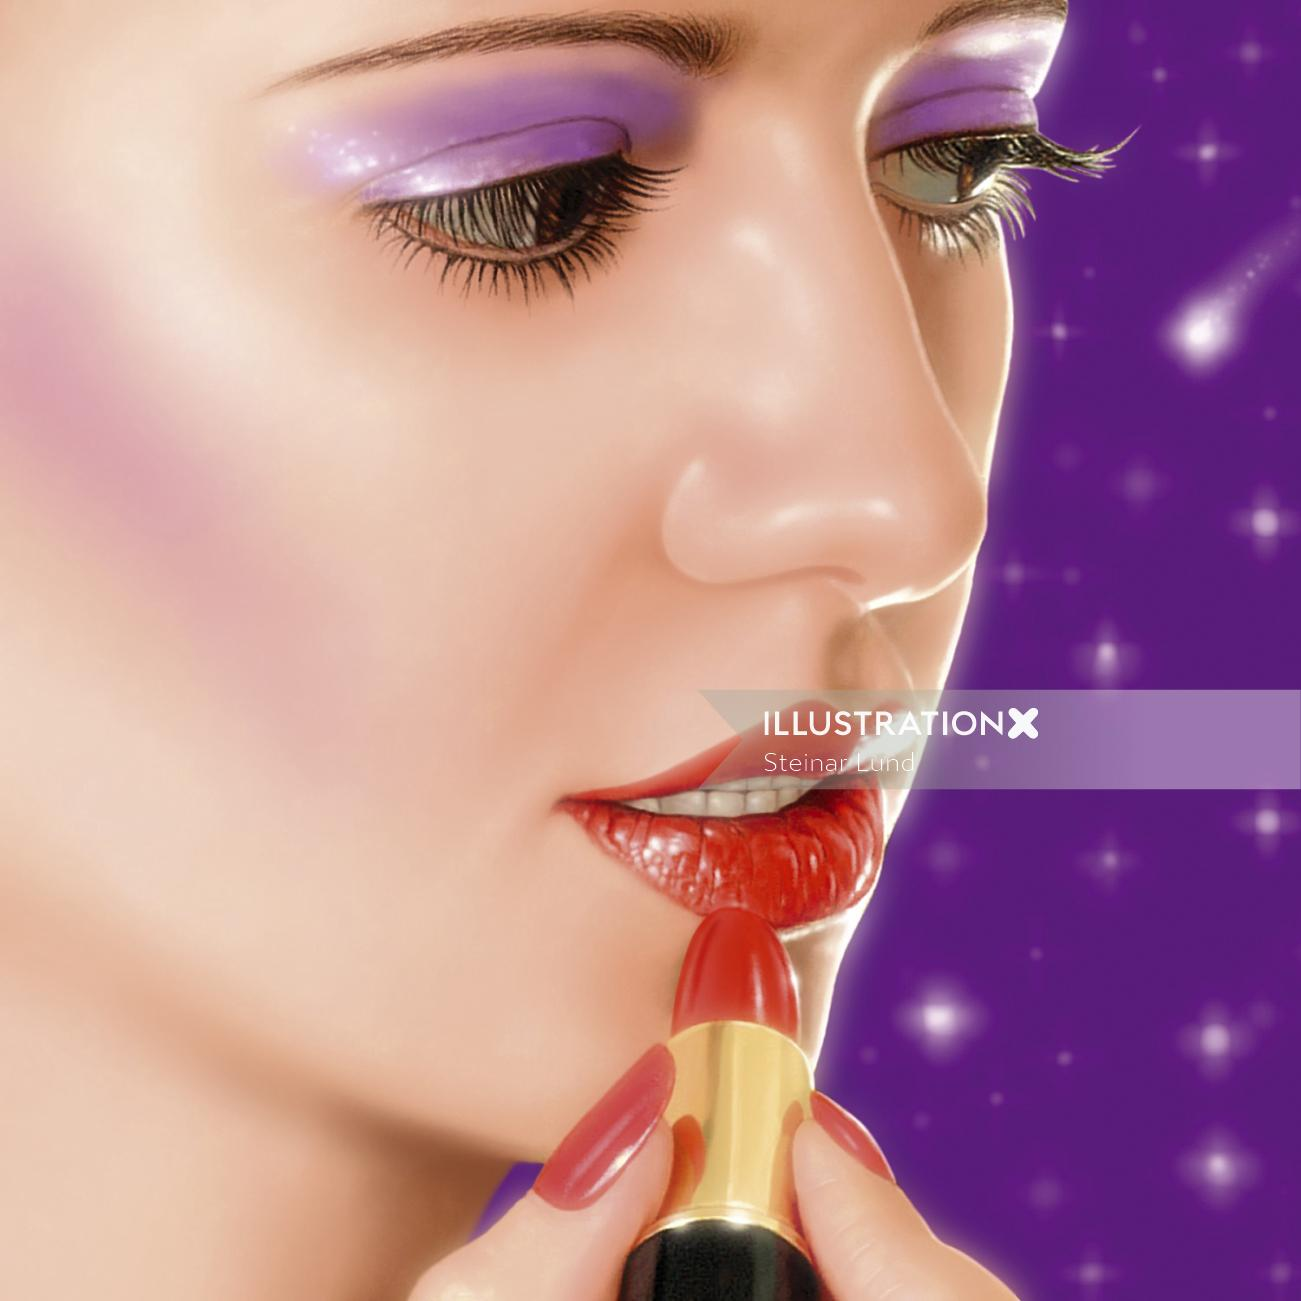 Realistic imagery of woman putting on lipstick